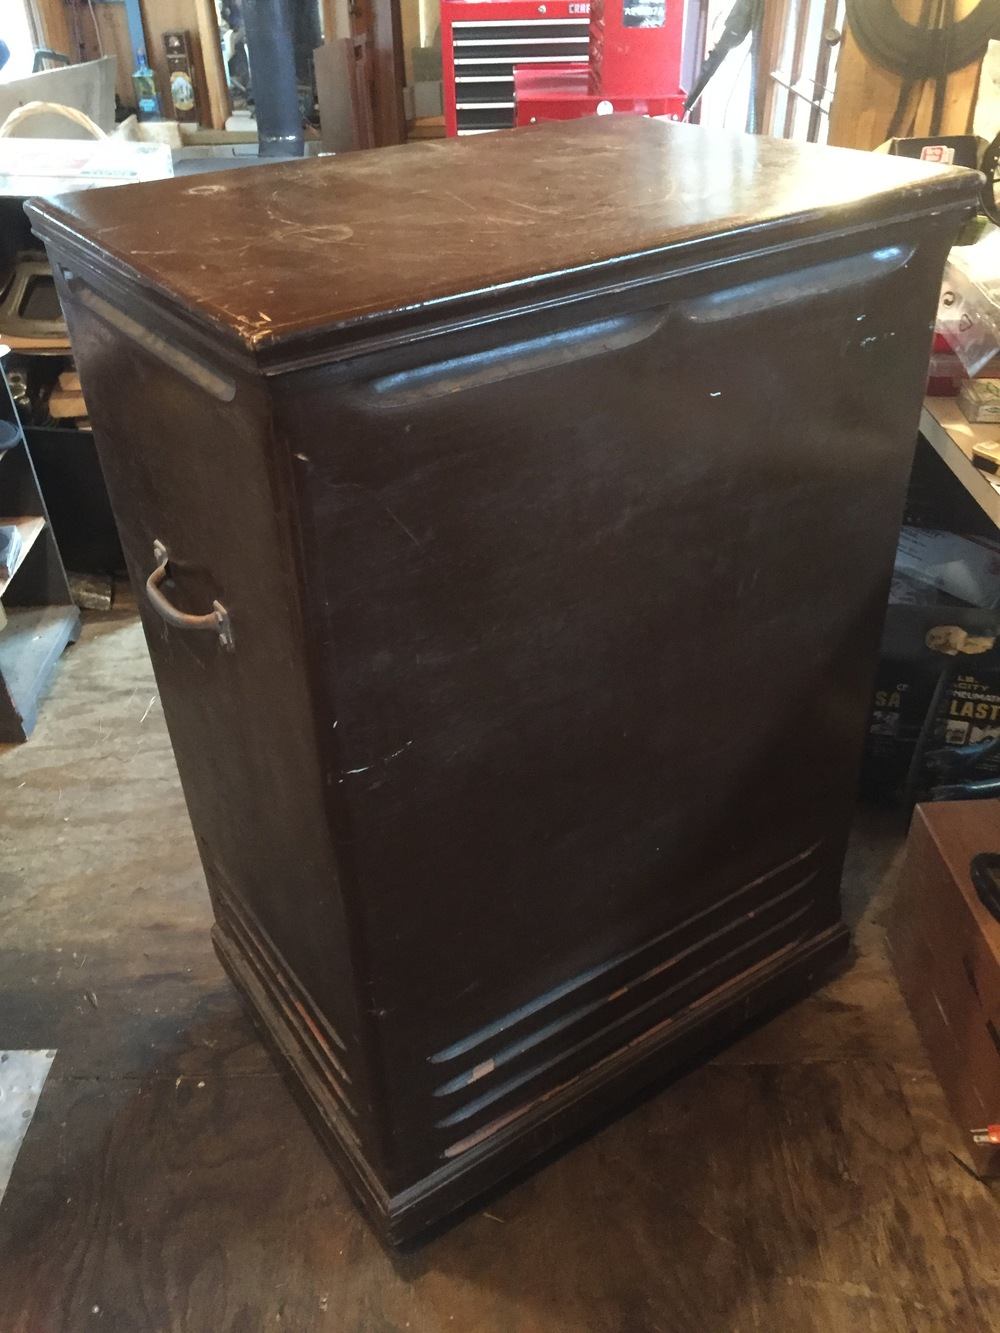 Cabinet needs repair. Painted brown, with handles and wobbly casters